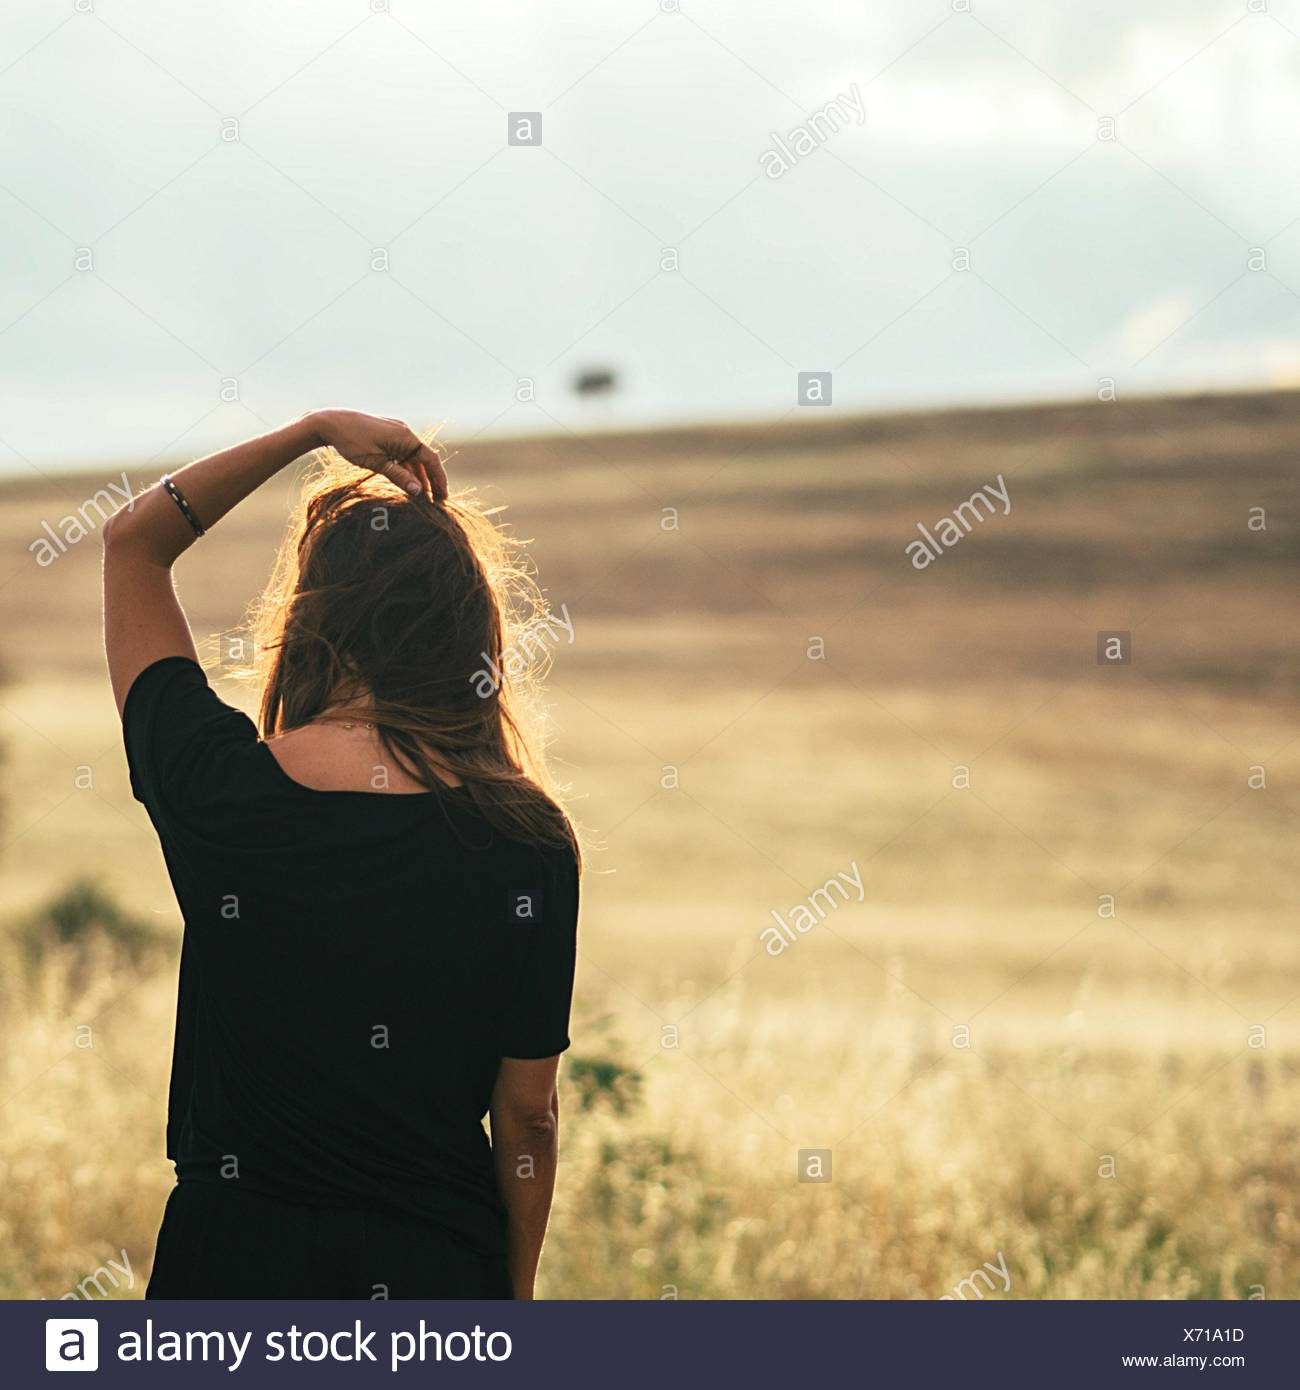 Woman Overlooking Countryside Landscape - Stock Image